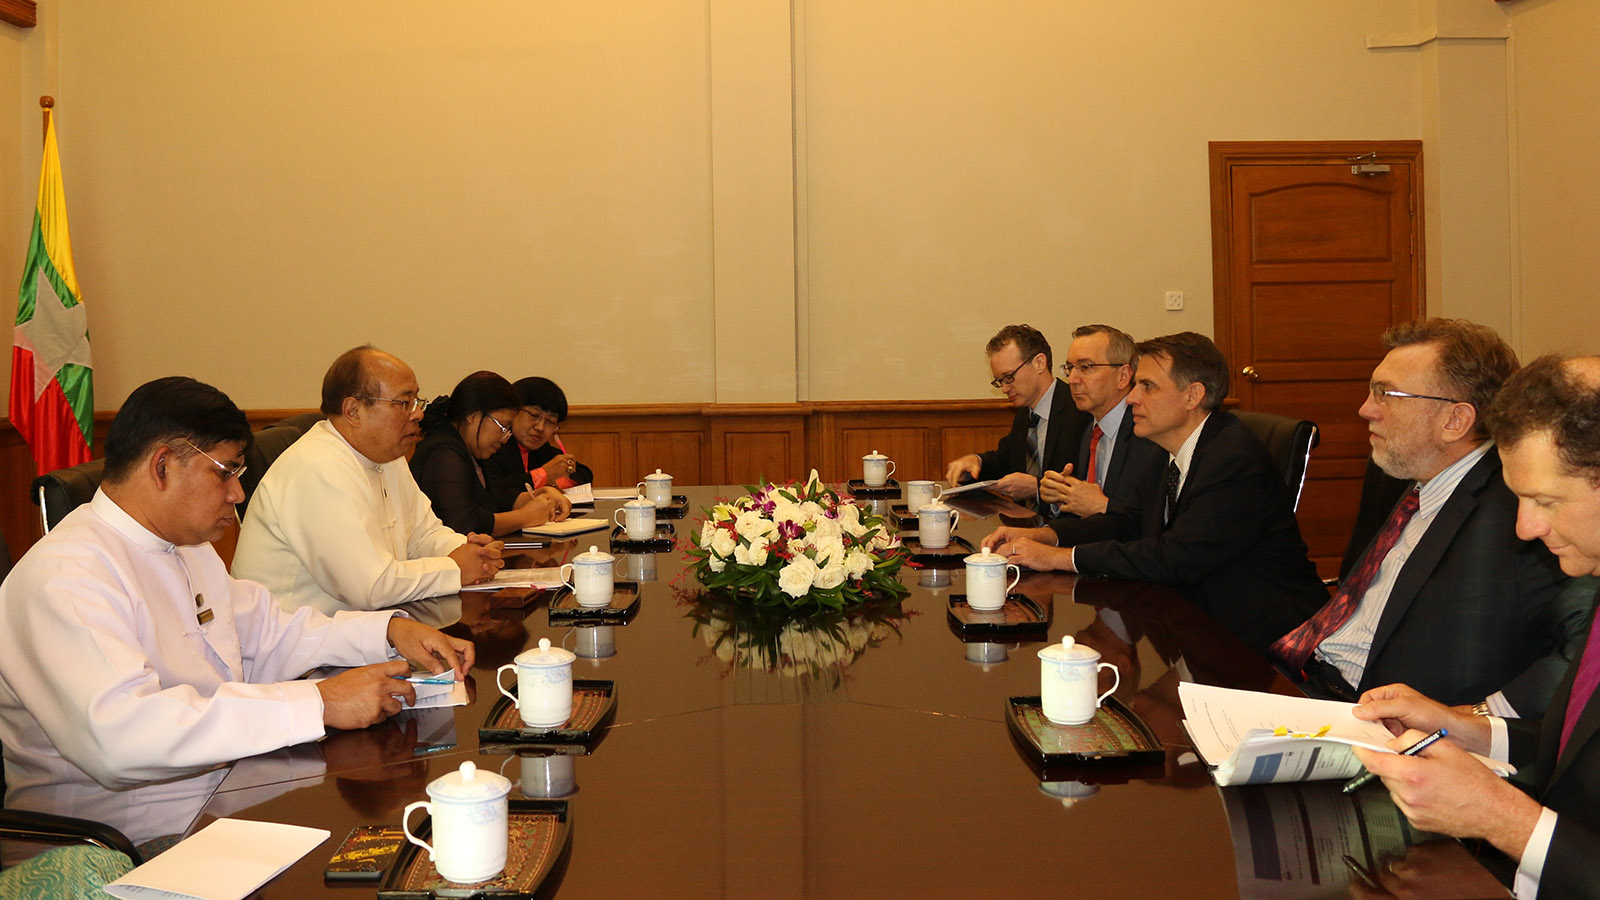 Union Minister U Thaung Tun meets with the US delegation led by US Department of Treasury Deputy Assistant Secretary for South East Asia Mr Robert Kaproth and US Ambassador Mr. Scot Marciel. Photo: MNA